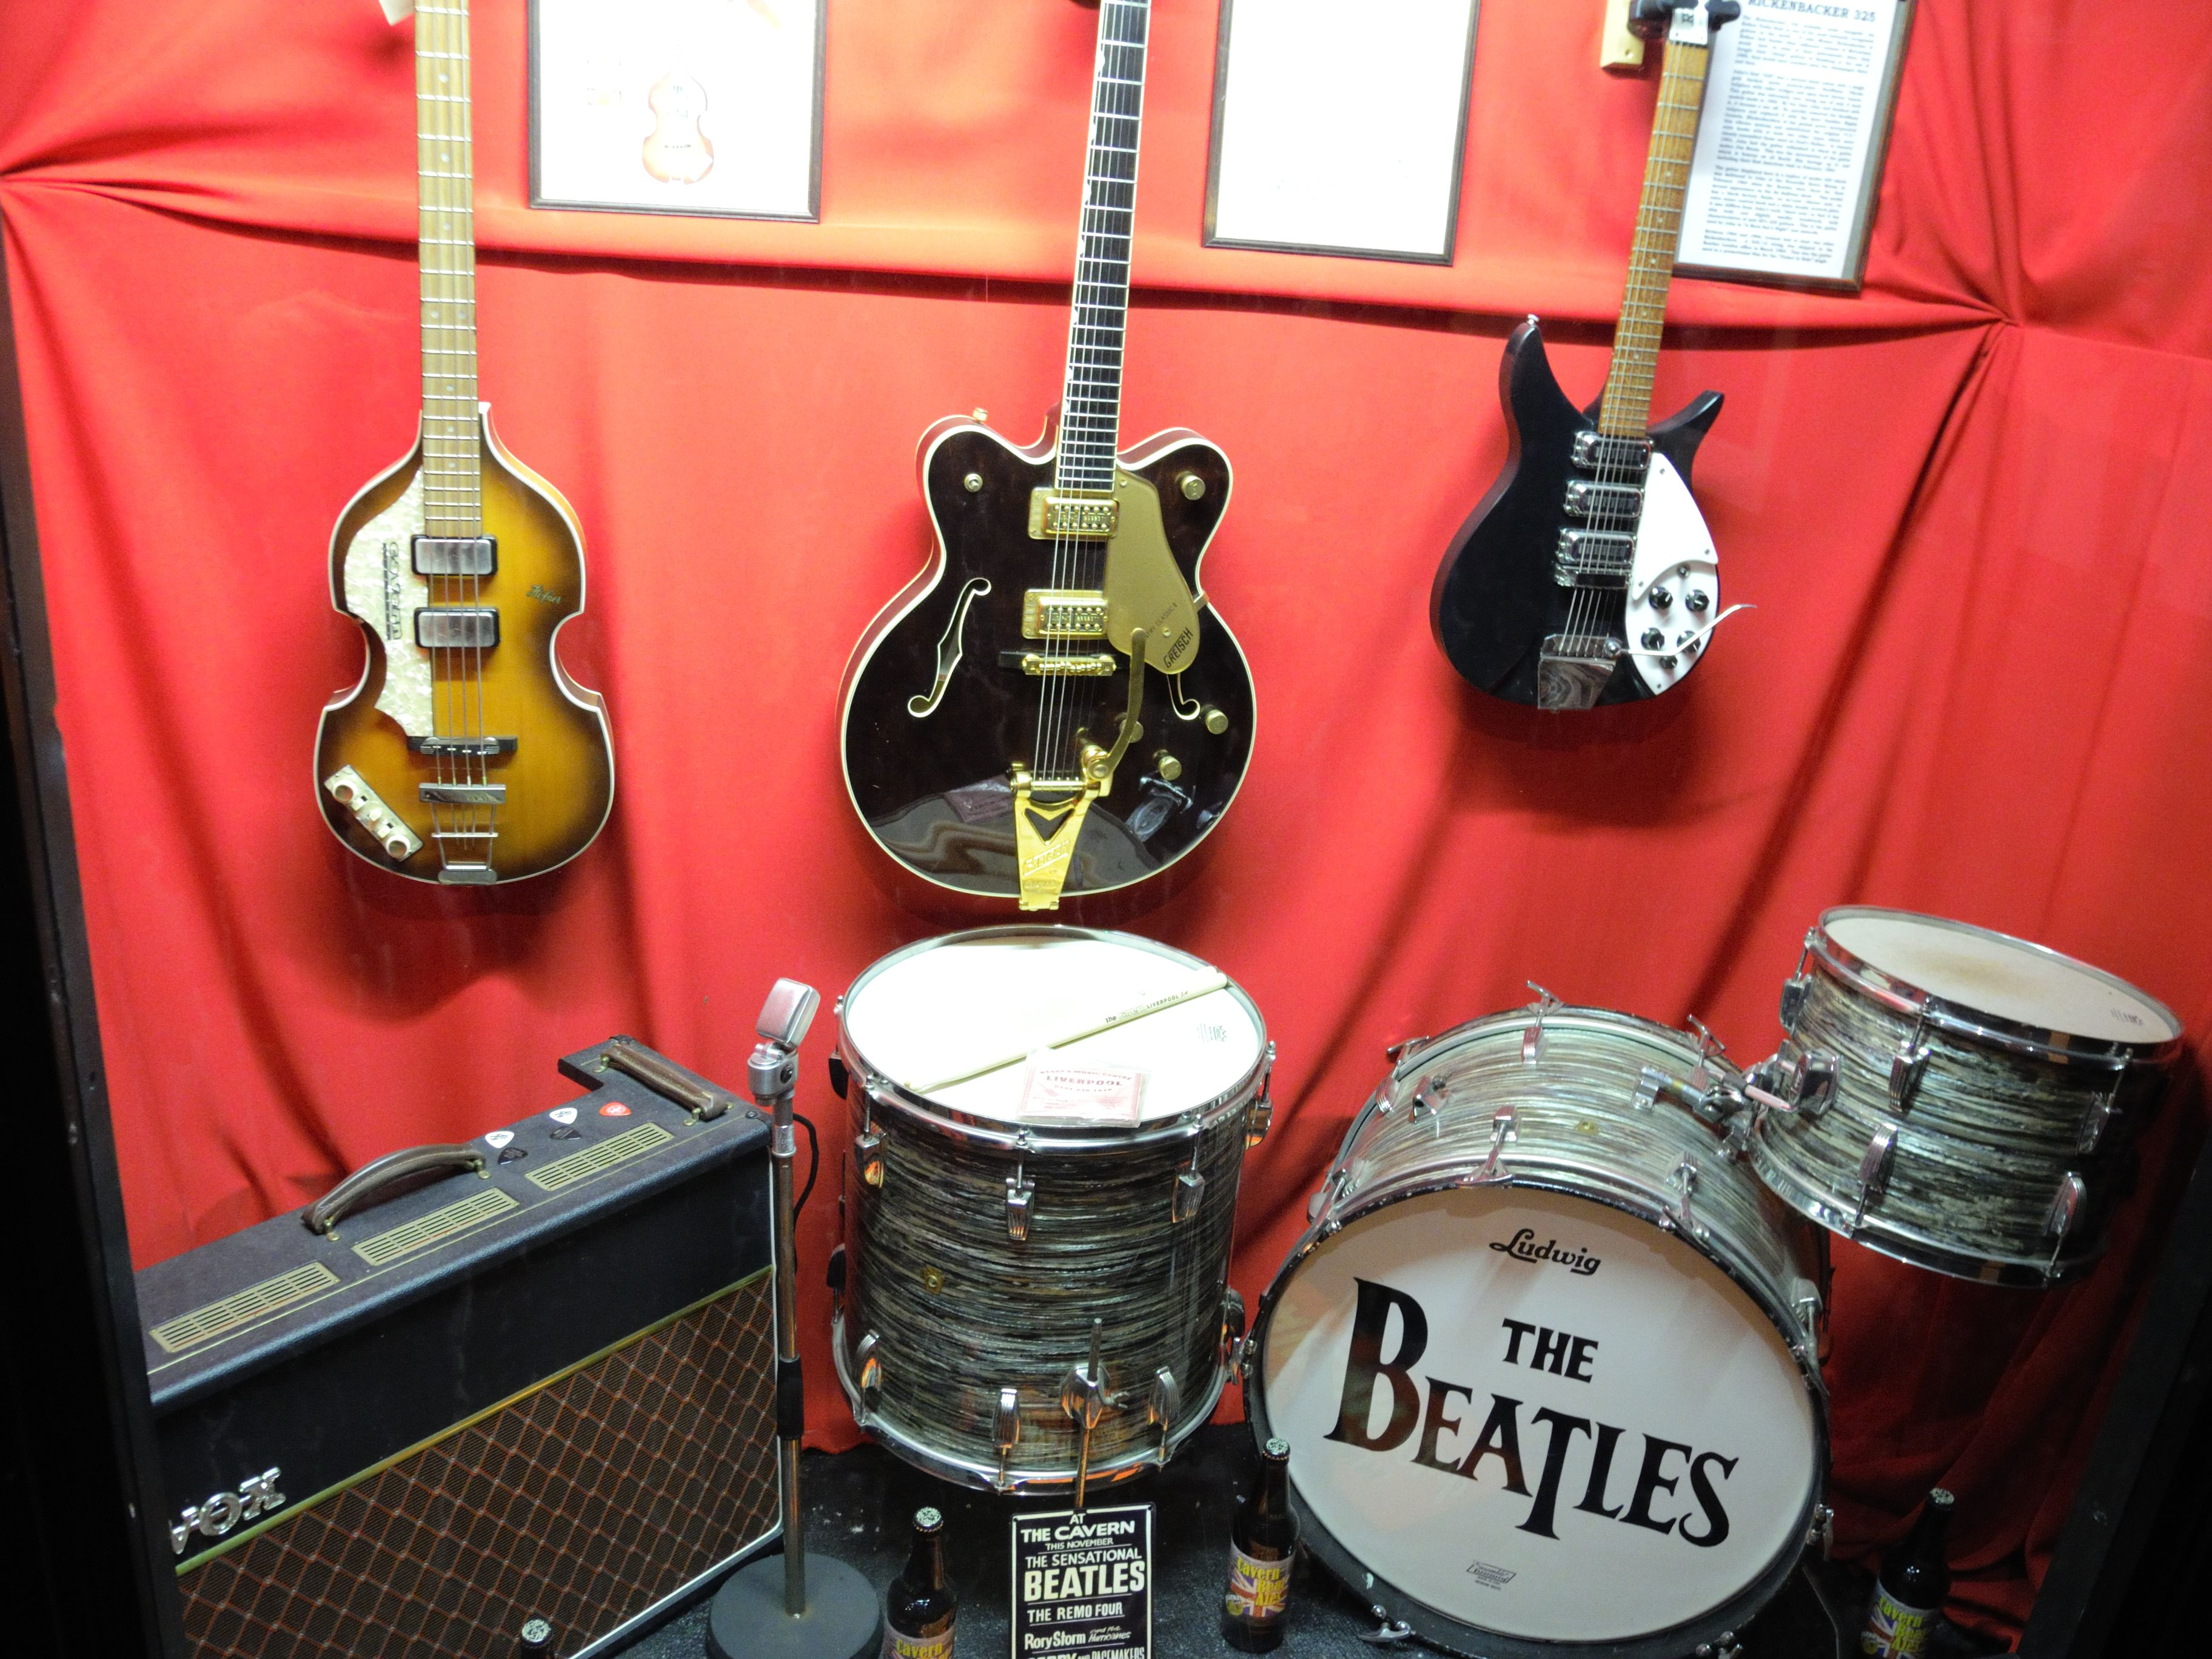 Nikon P7000 Liverpool Part 3: The Beatles | The Sound Of My Camera